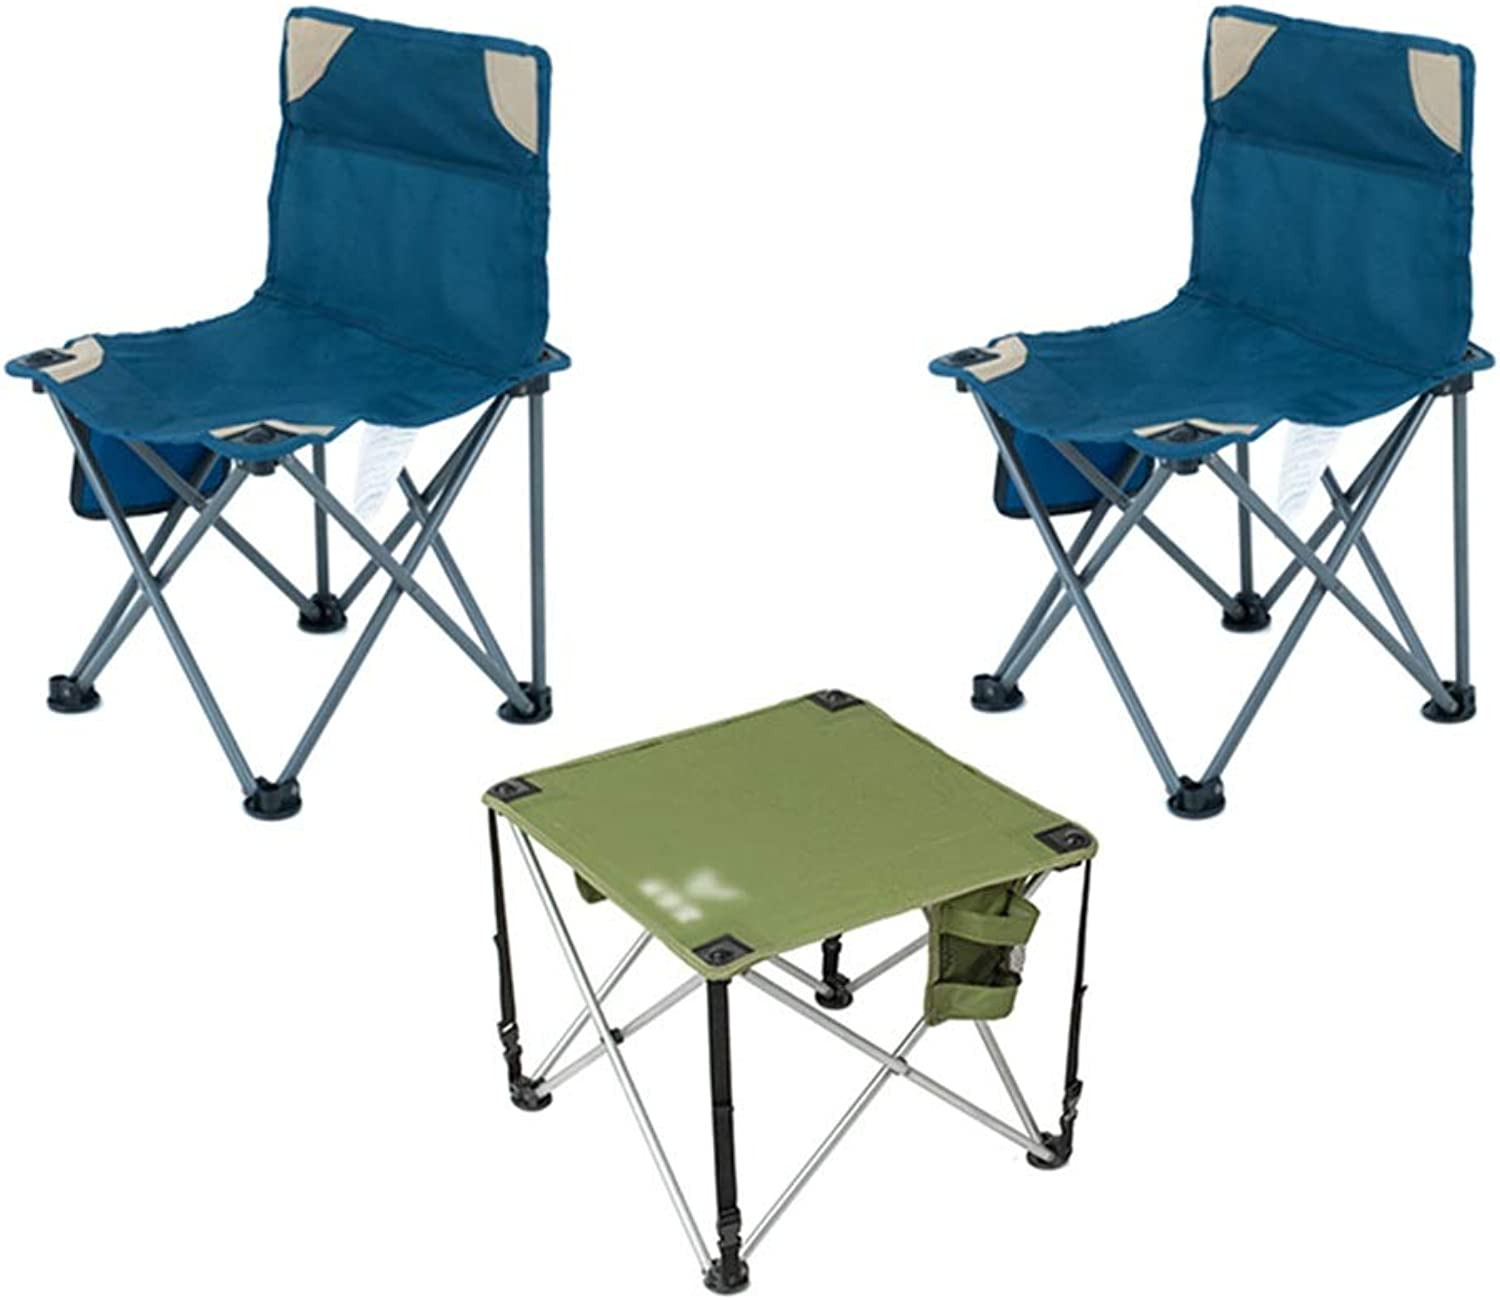 Portable Folding Chair and Table, Ultralight Camping Chairs Suitable for Outdoor Camp, Travel, Beach, Picnic, Festival, Hiking